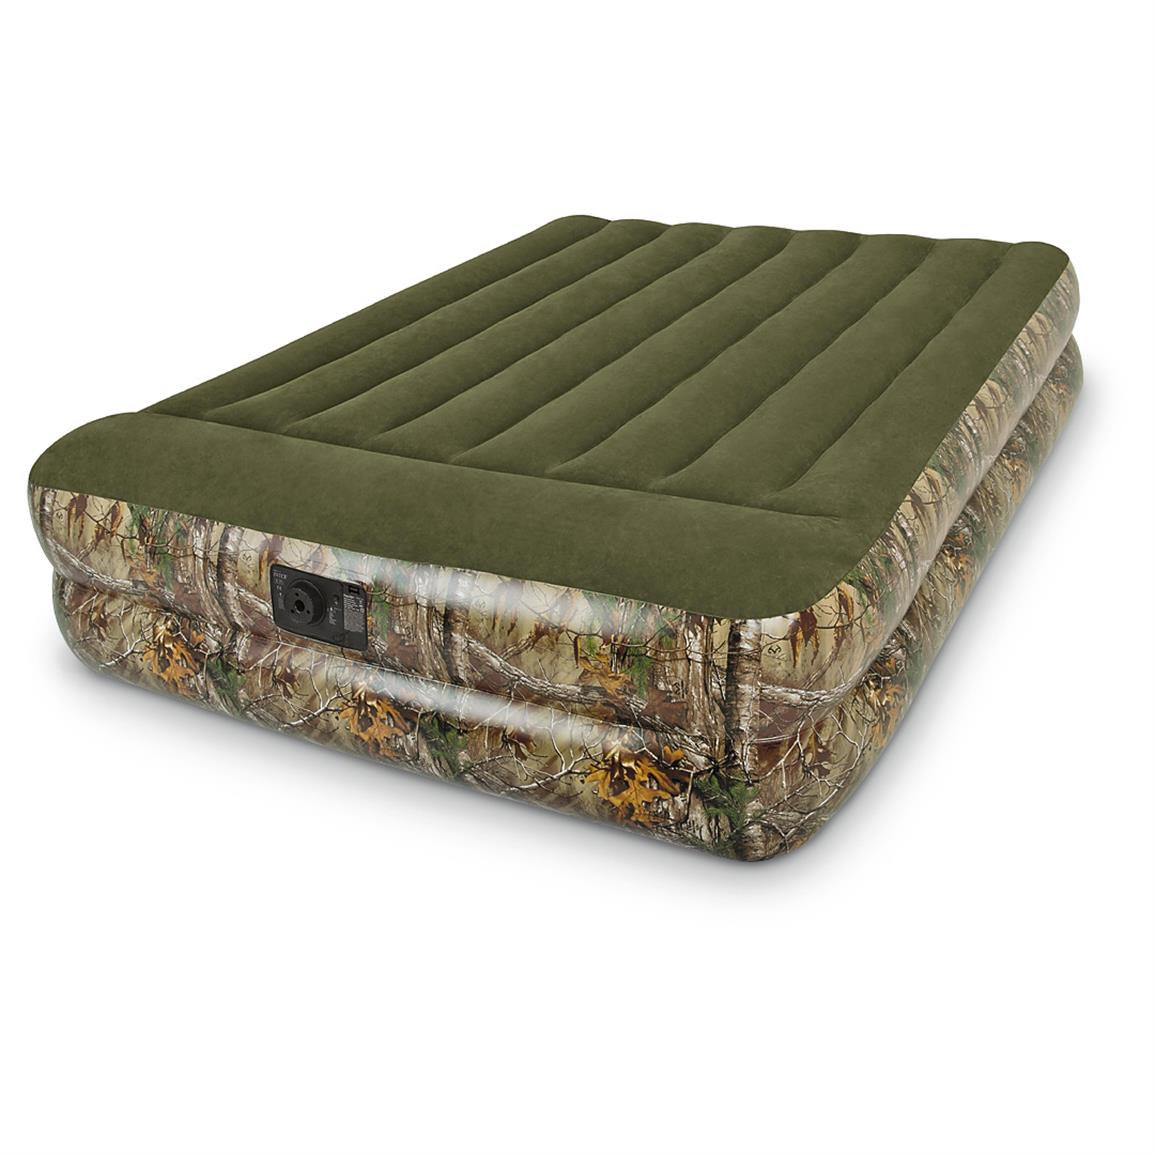 Realtree Camo Outdoor Raised Airbed with Pump